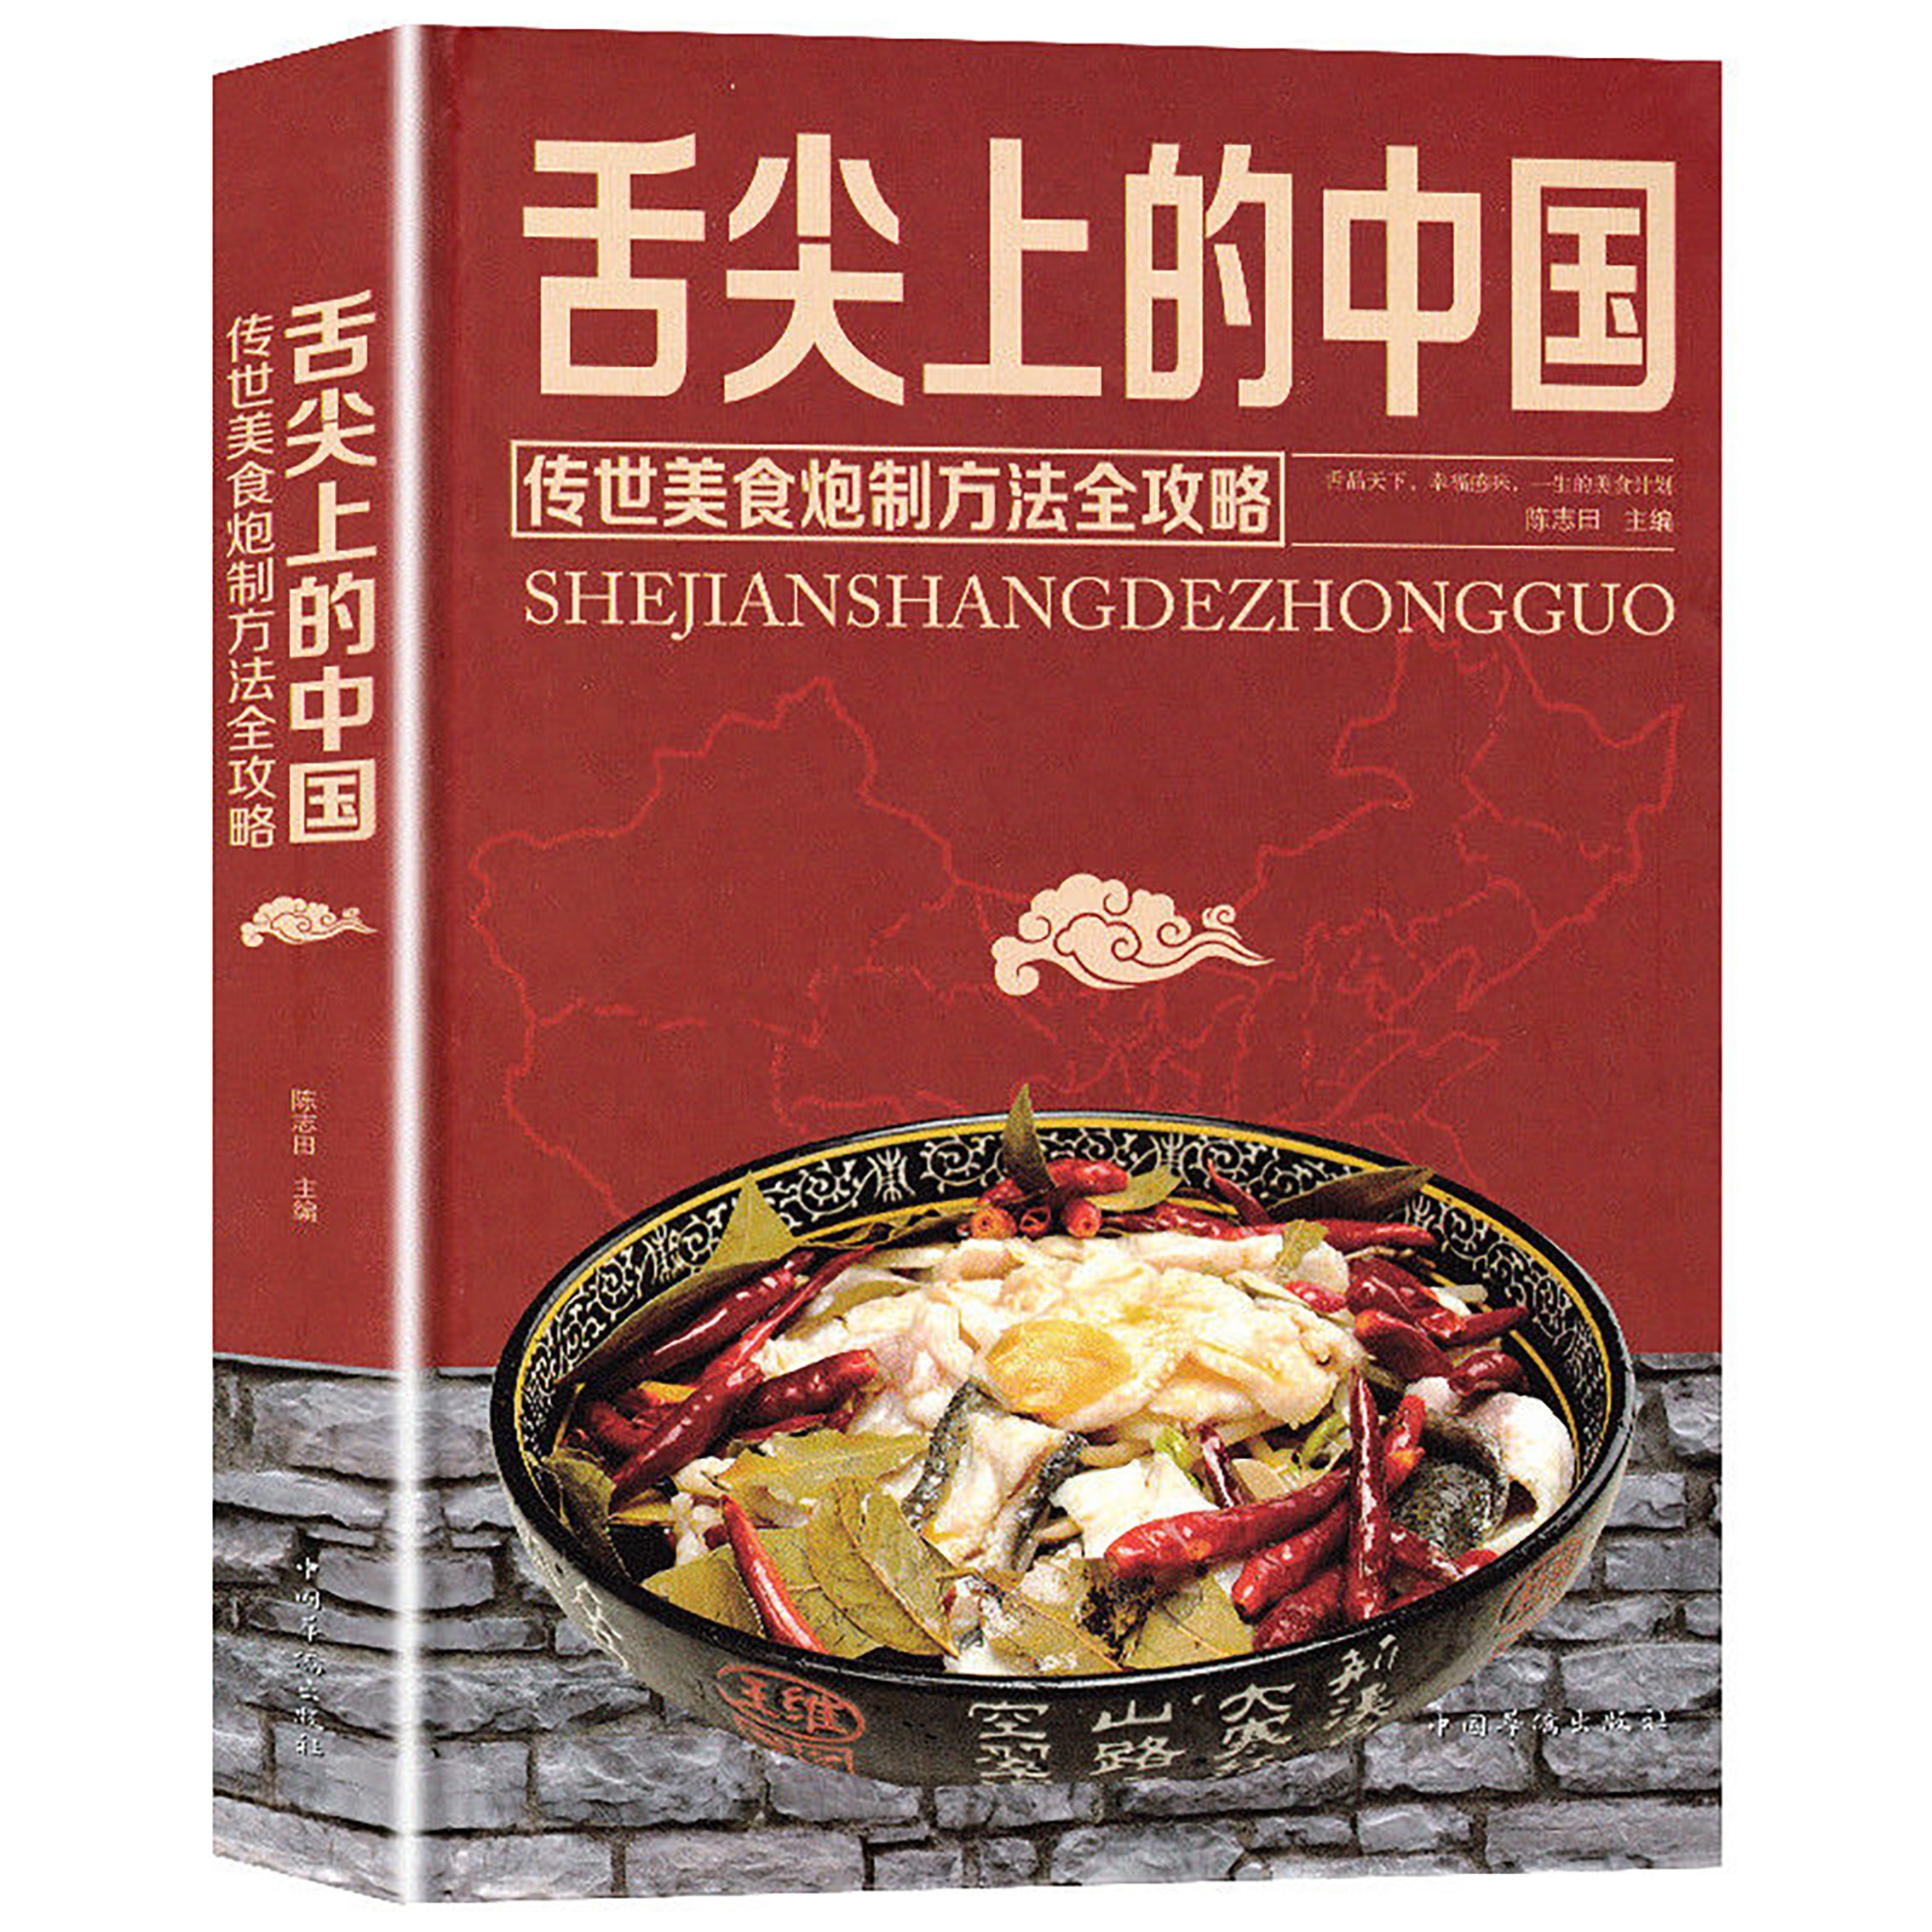 3600 Chinese Cooking Books Cases Home Recipes Daquan Health Soup Nutrition Soup Libros Gourmet Food On The Tip Of The Tongue Art chinese food dishes book chinese pasta chinese cooking book for cooking food recipes free shipping